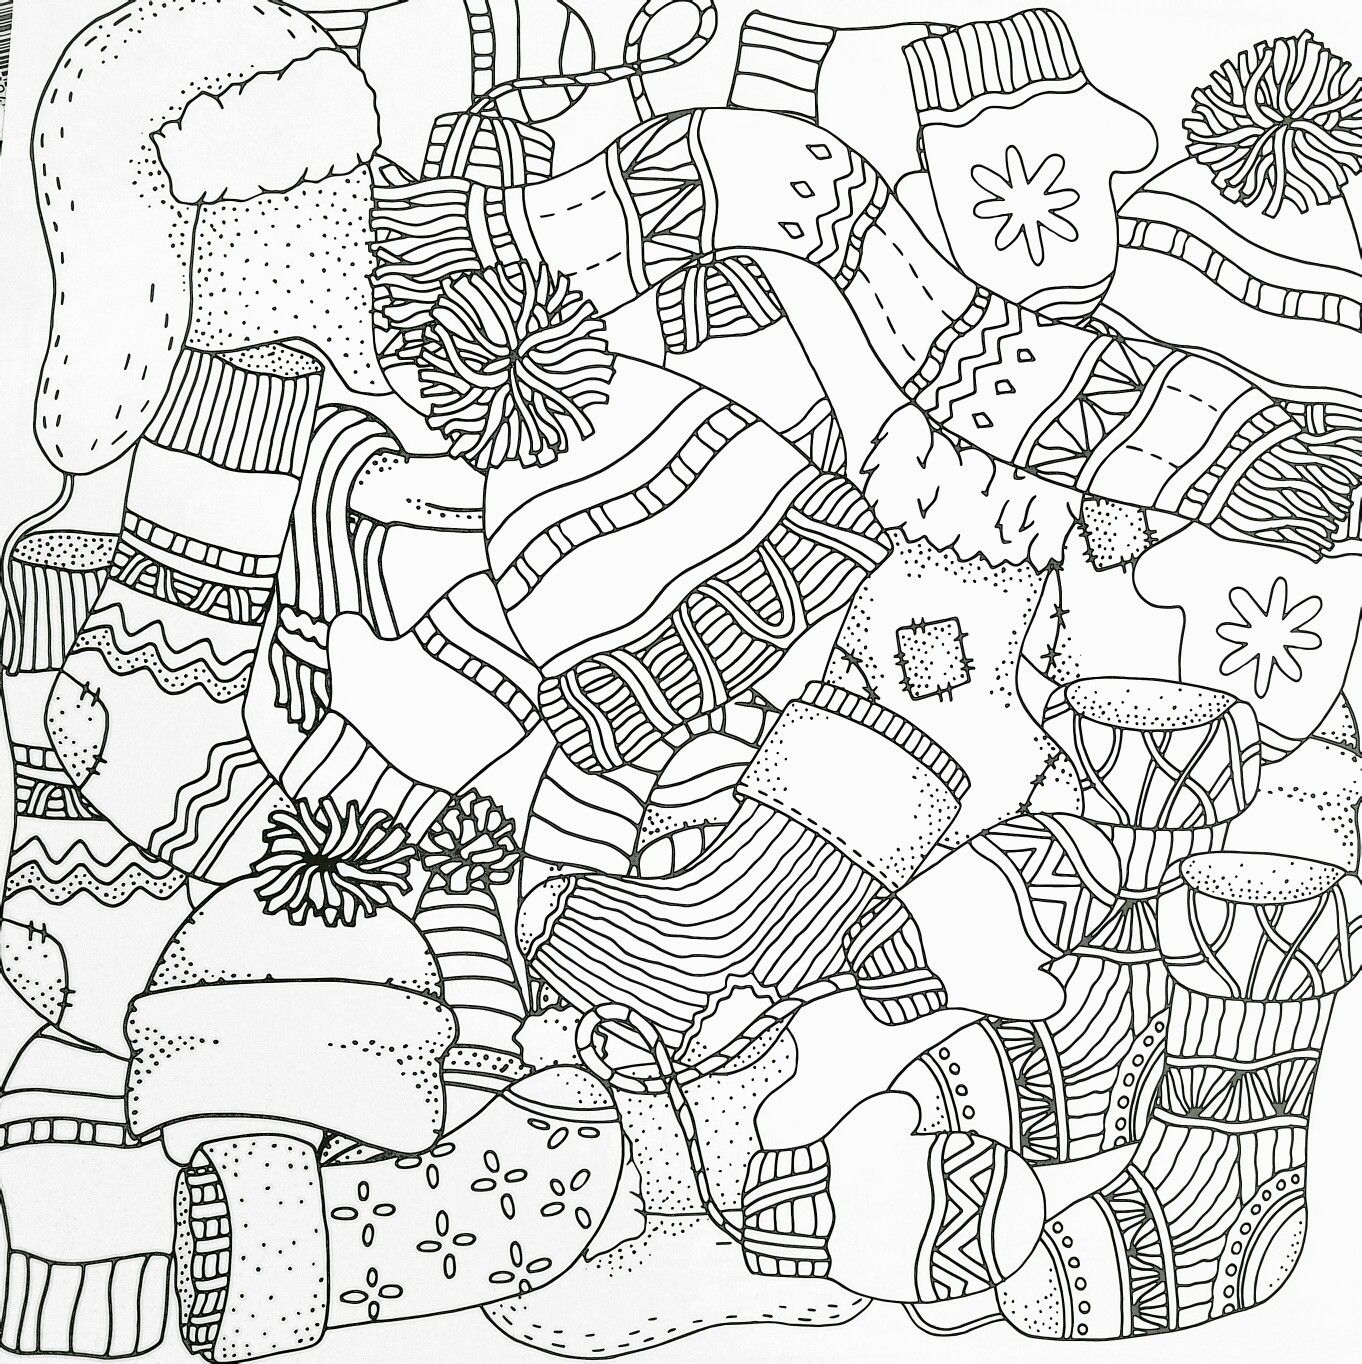 Winter adult coloring page socks, mittens, hats